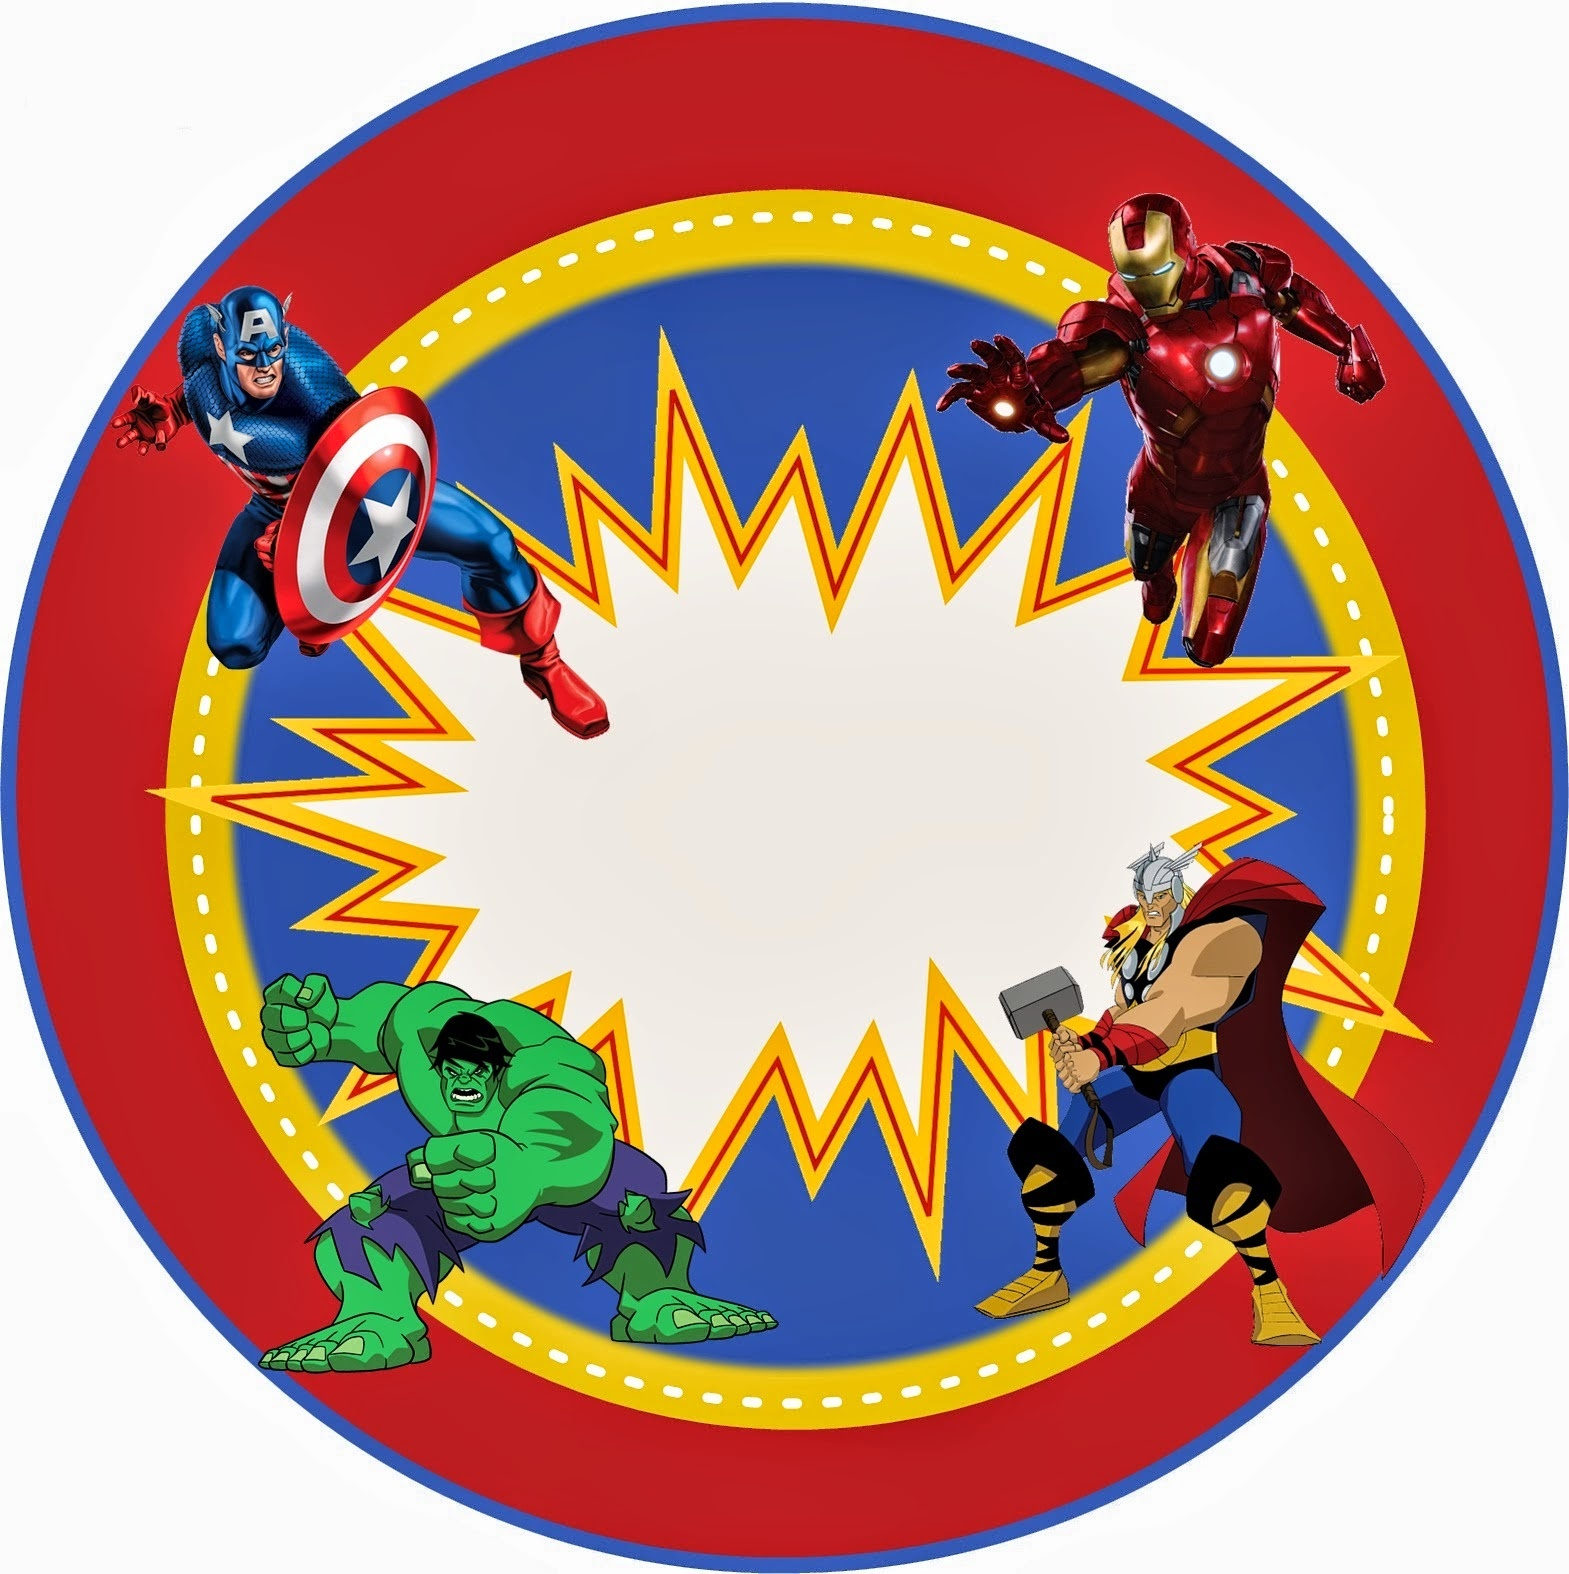 Avengers Free Printable Kit. - Oh My Fiesta! In English - Free Avengers Birthday Party Printables